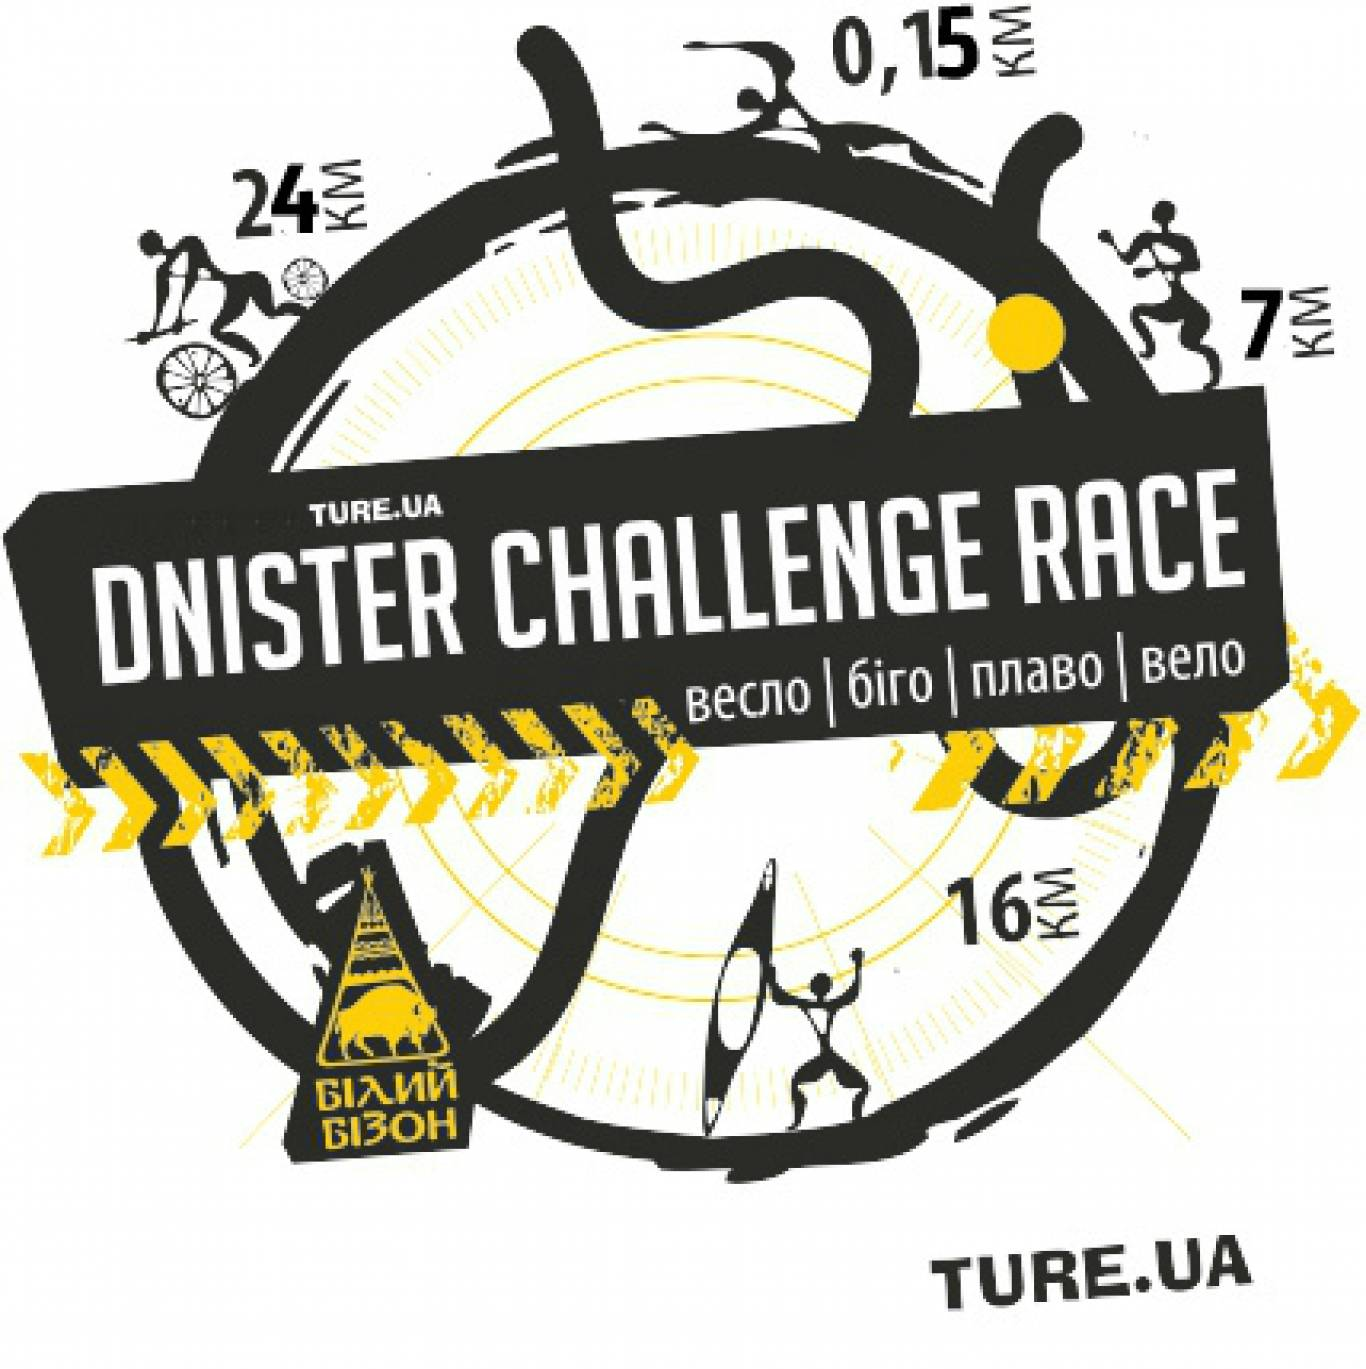 Dnister Challenge Race